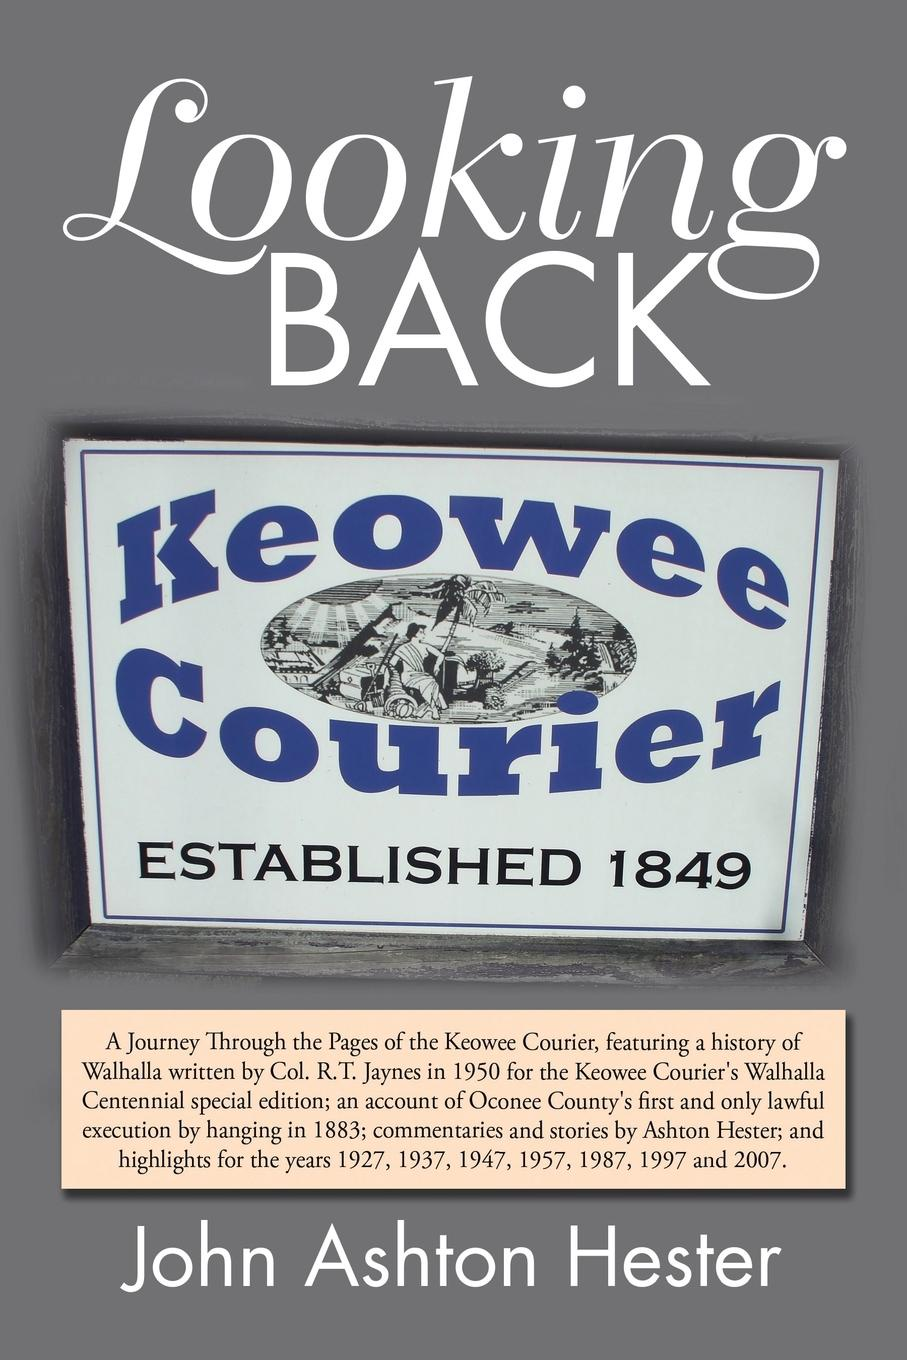 цена John Ashton Hester Looking Back. A Journey Through the Pages of the Keowee Courier for the Years 1927, 1937, 1947, 1957, 1987, 1997 and 2007 онлайн в 2017 году